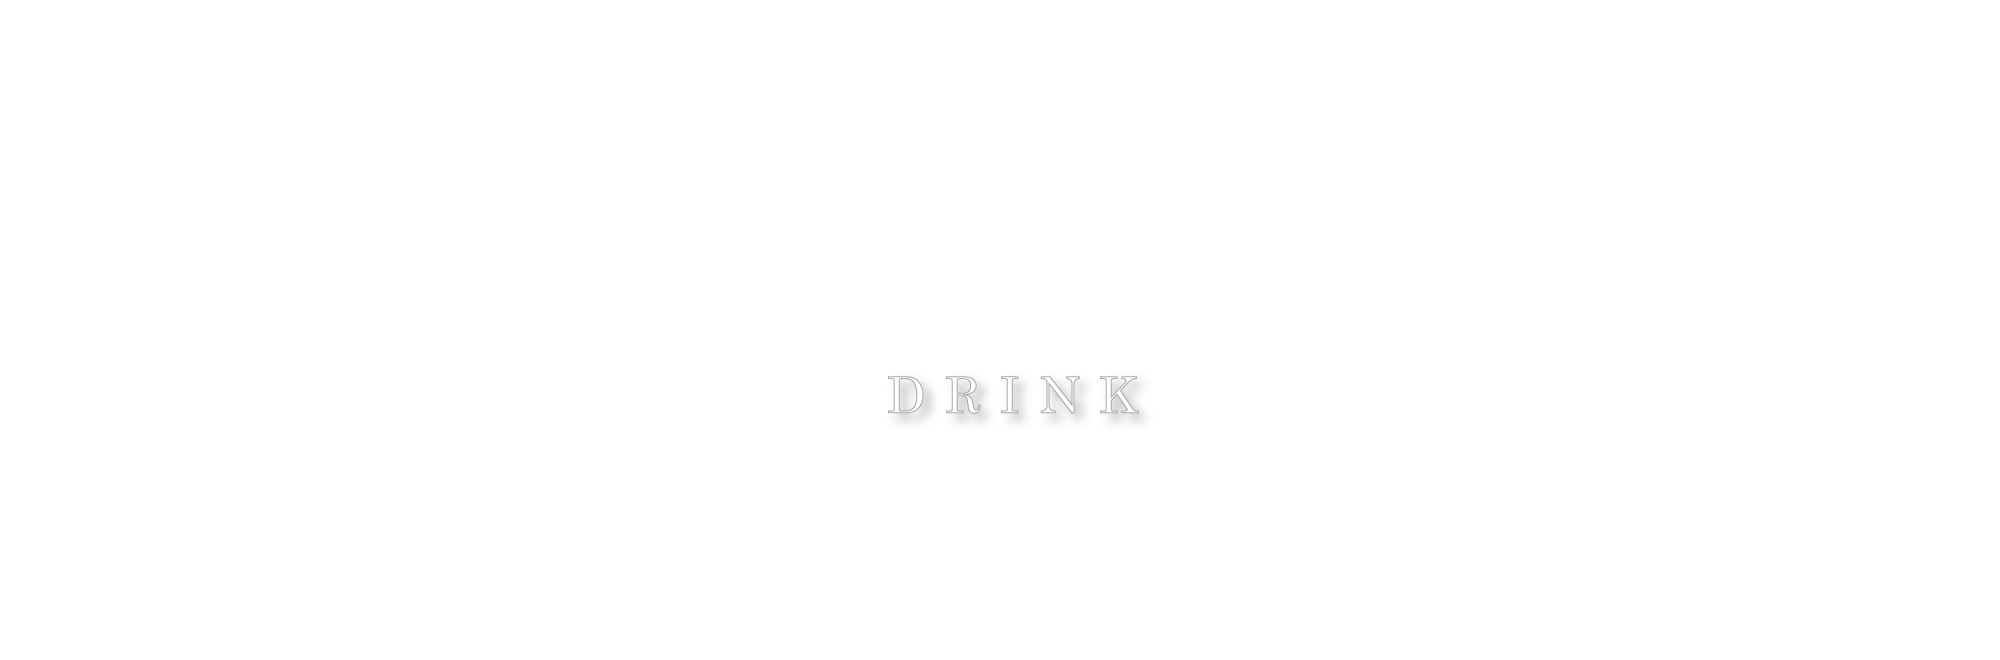 Time's One DRINK